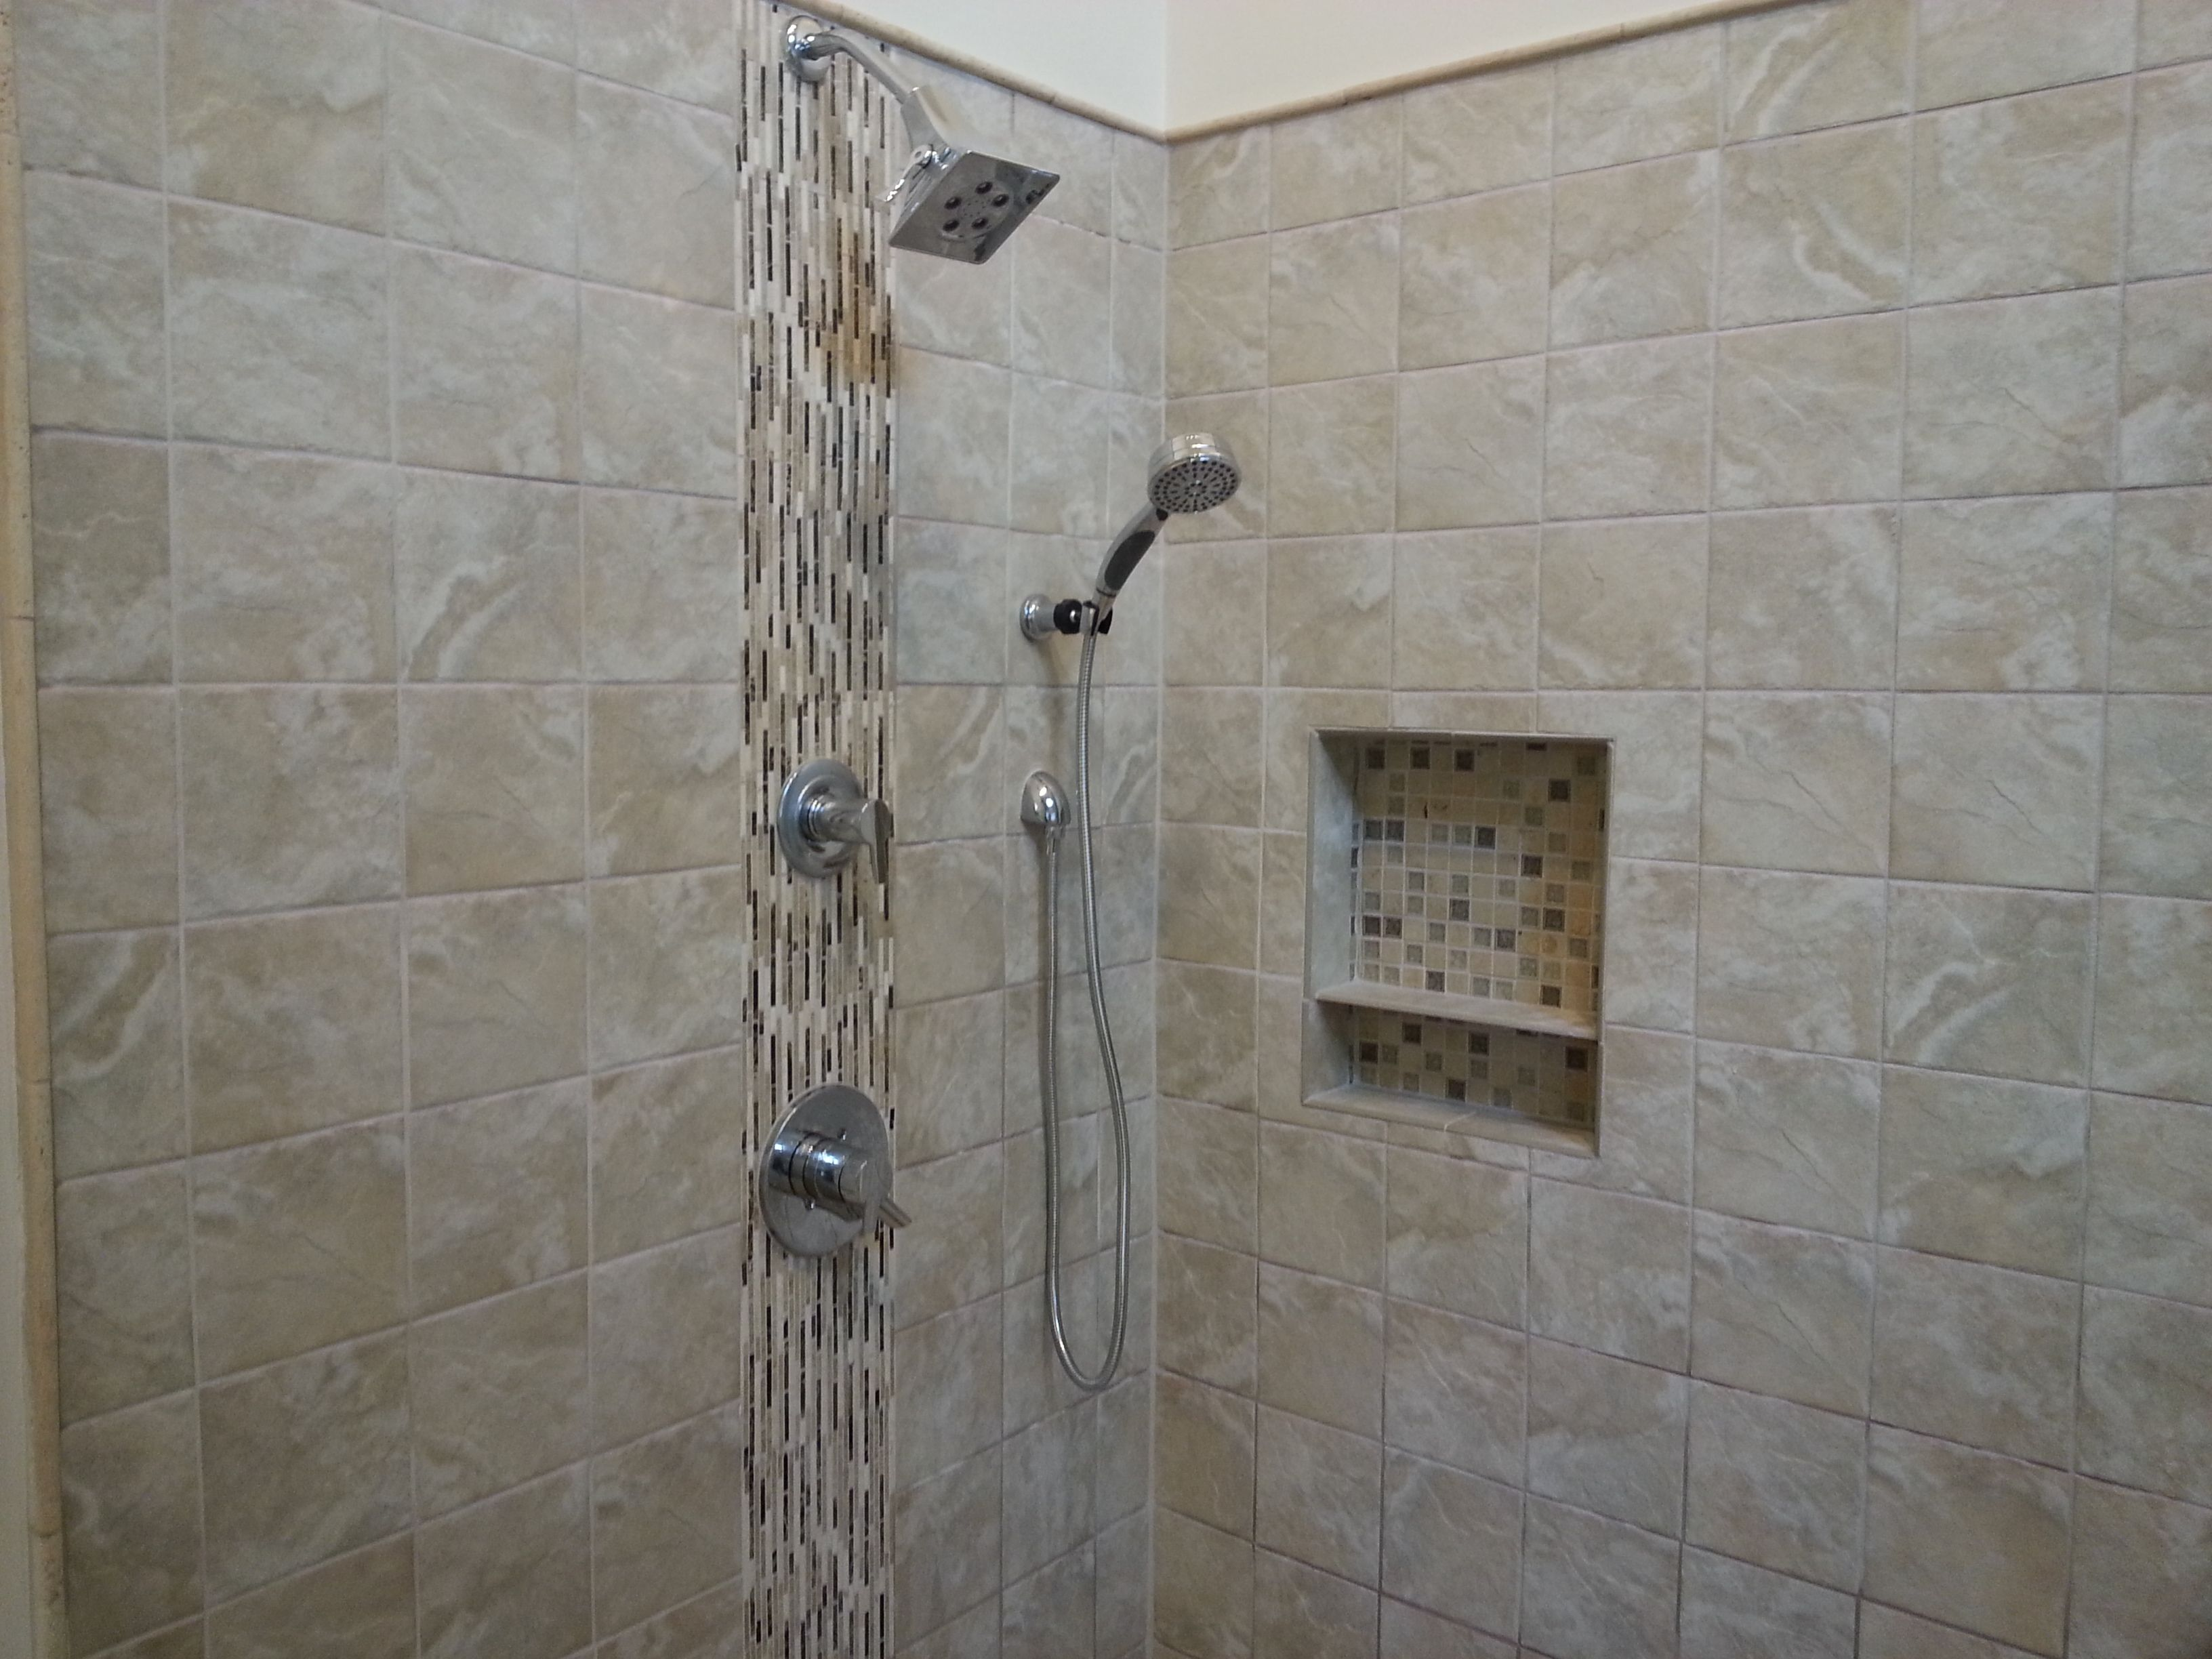 Porcelain Shower Tile Vertical Gl Design With Built In